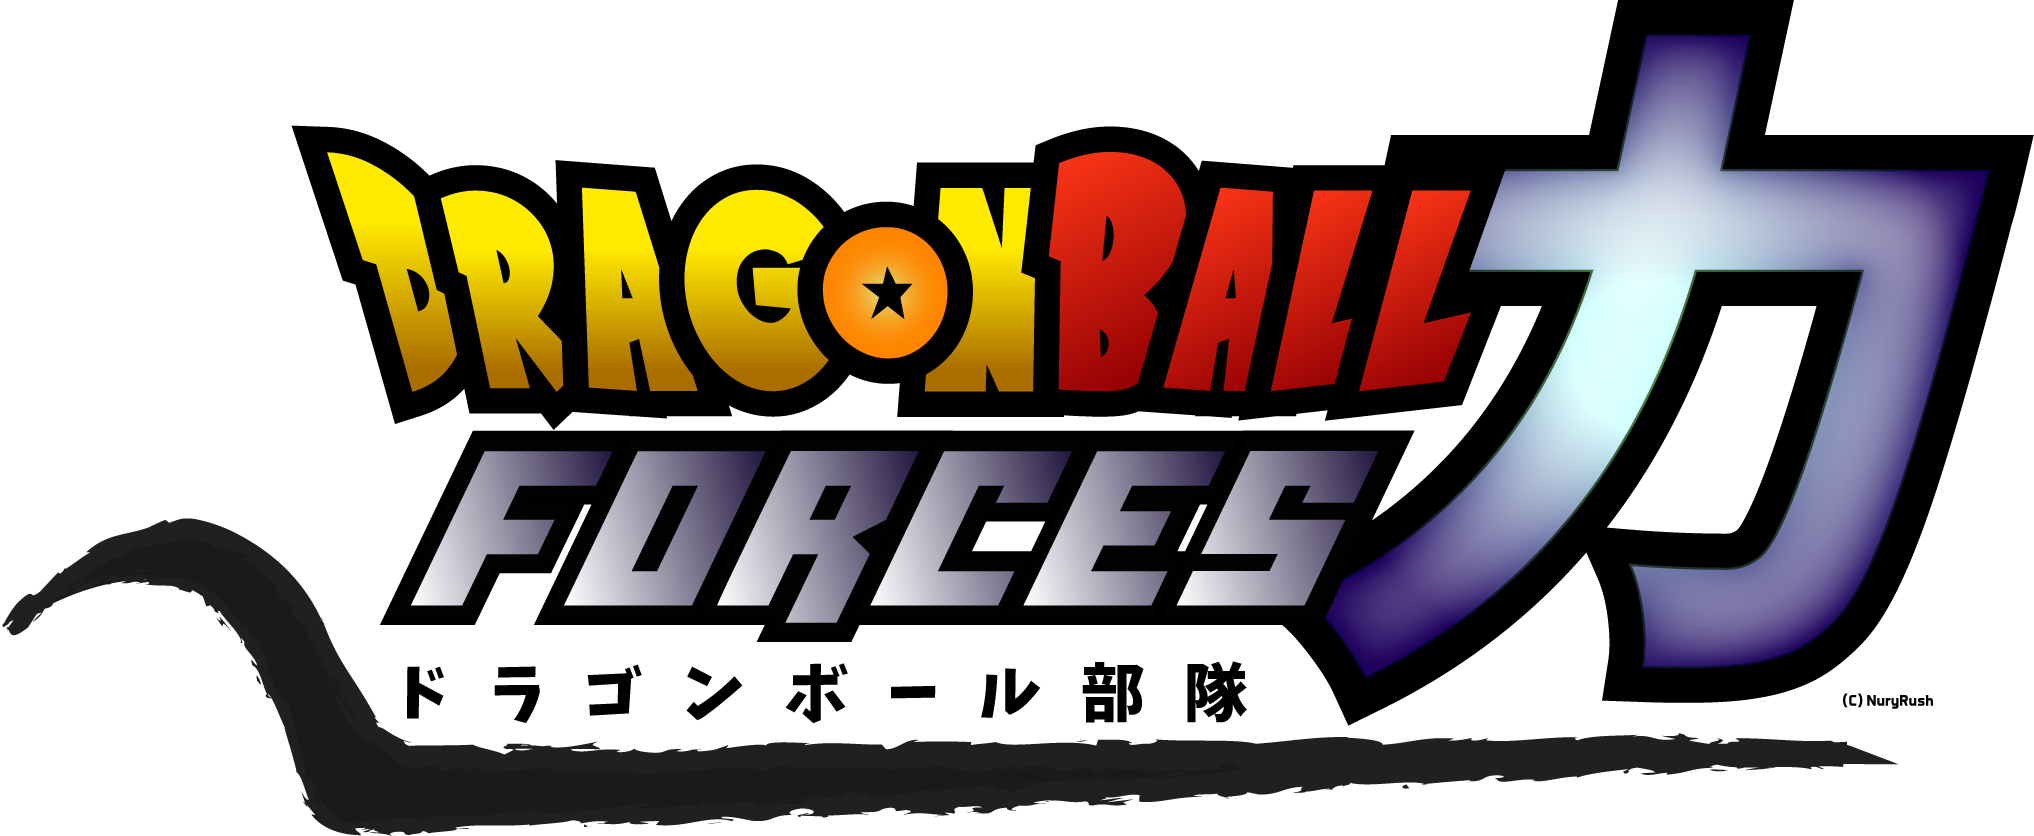 Dragon Ball Forces Logo by NuryRush